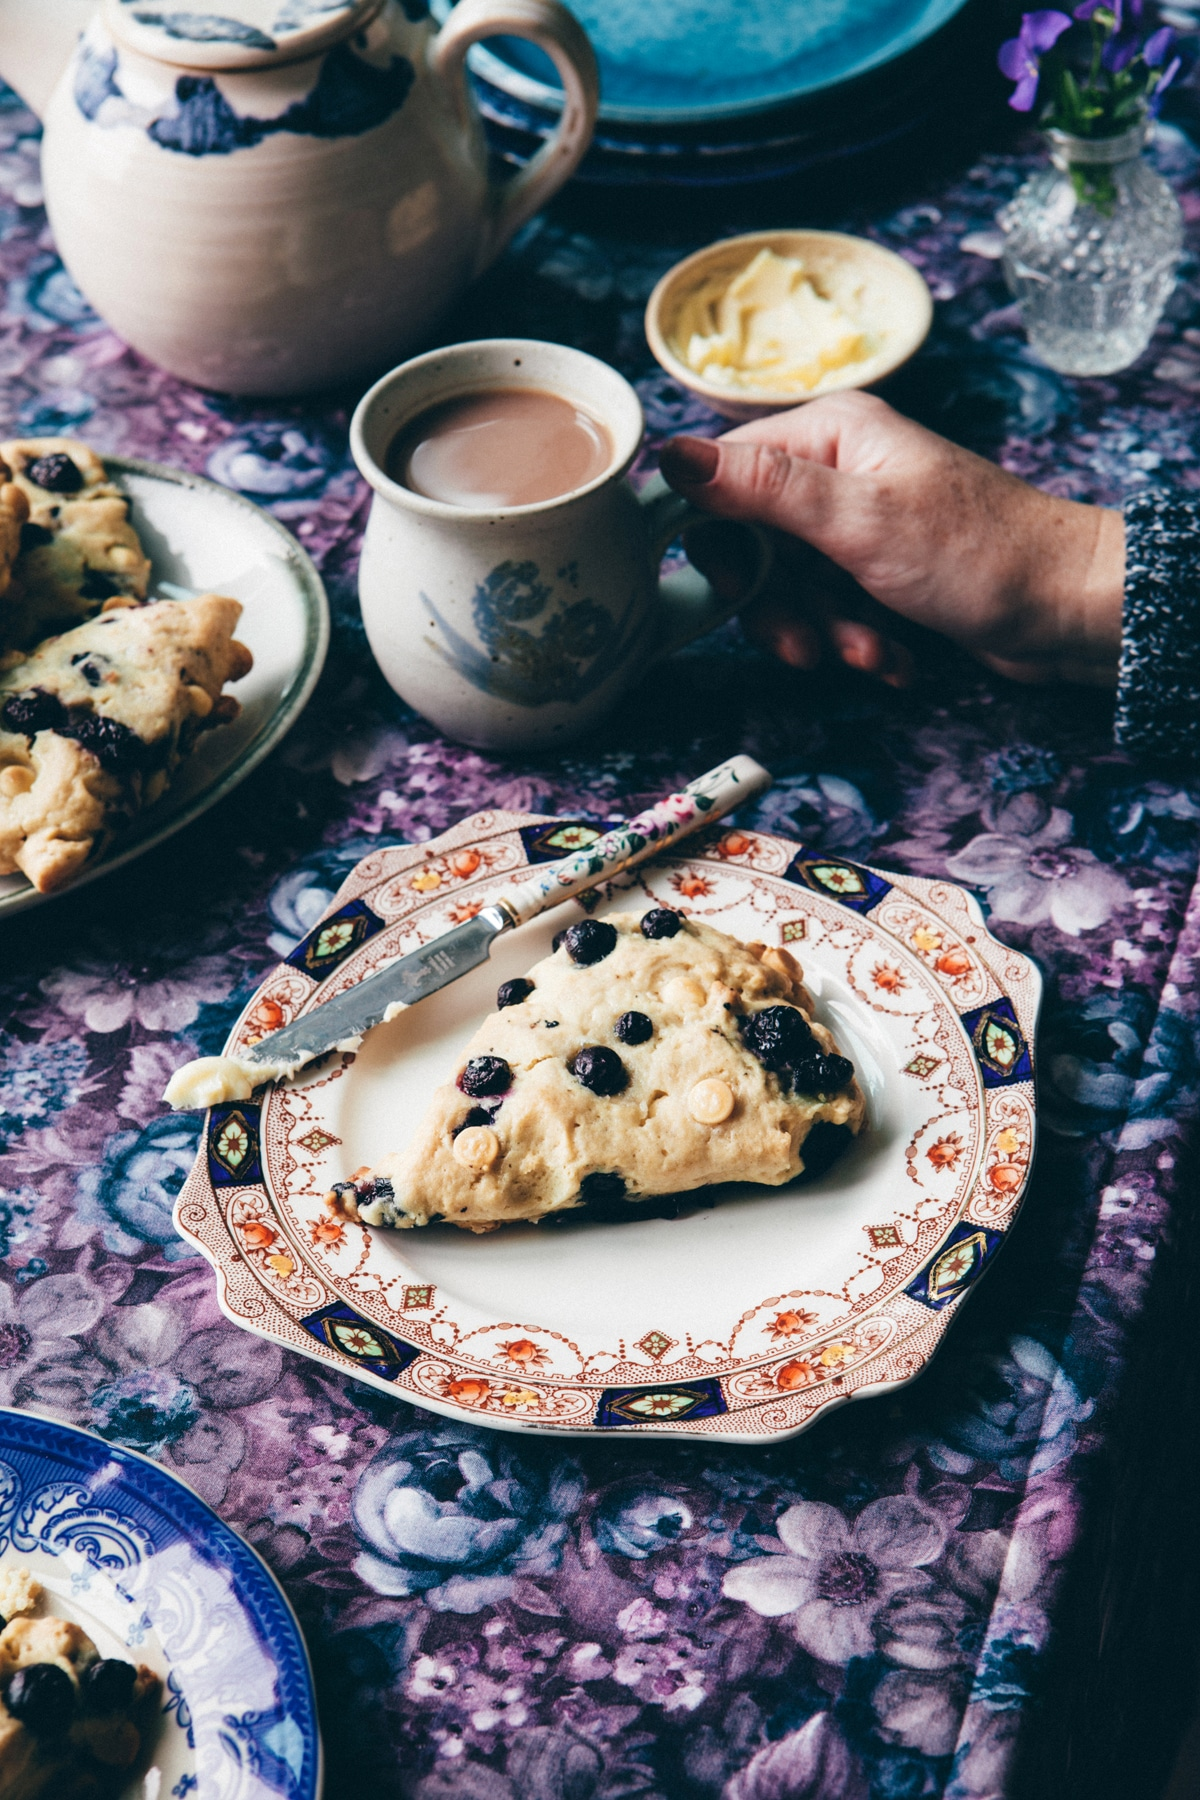 A table filled with plates of blueberry white chocolate scones and a woman's hand holding a cup of tea.